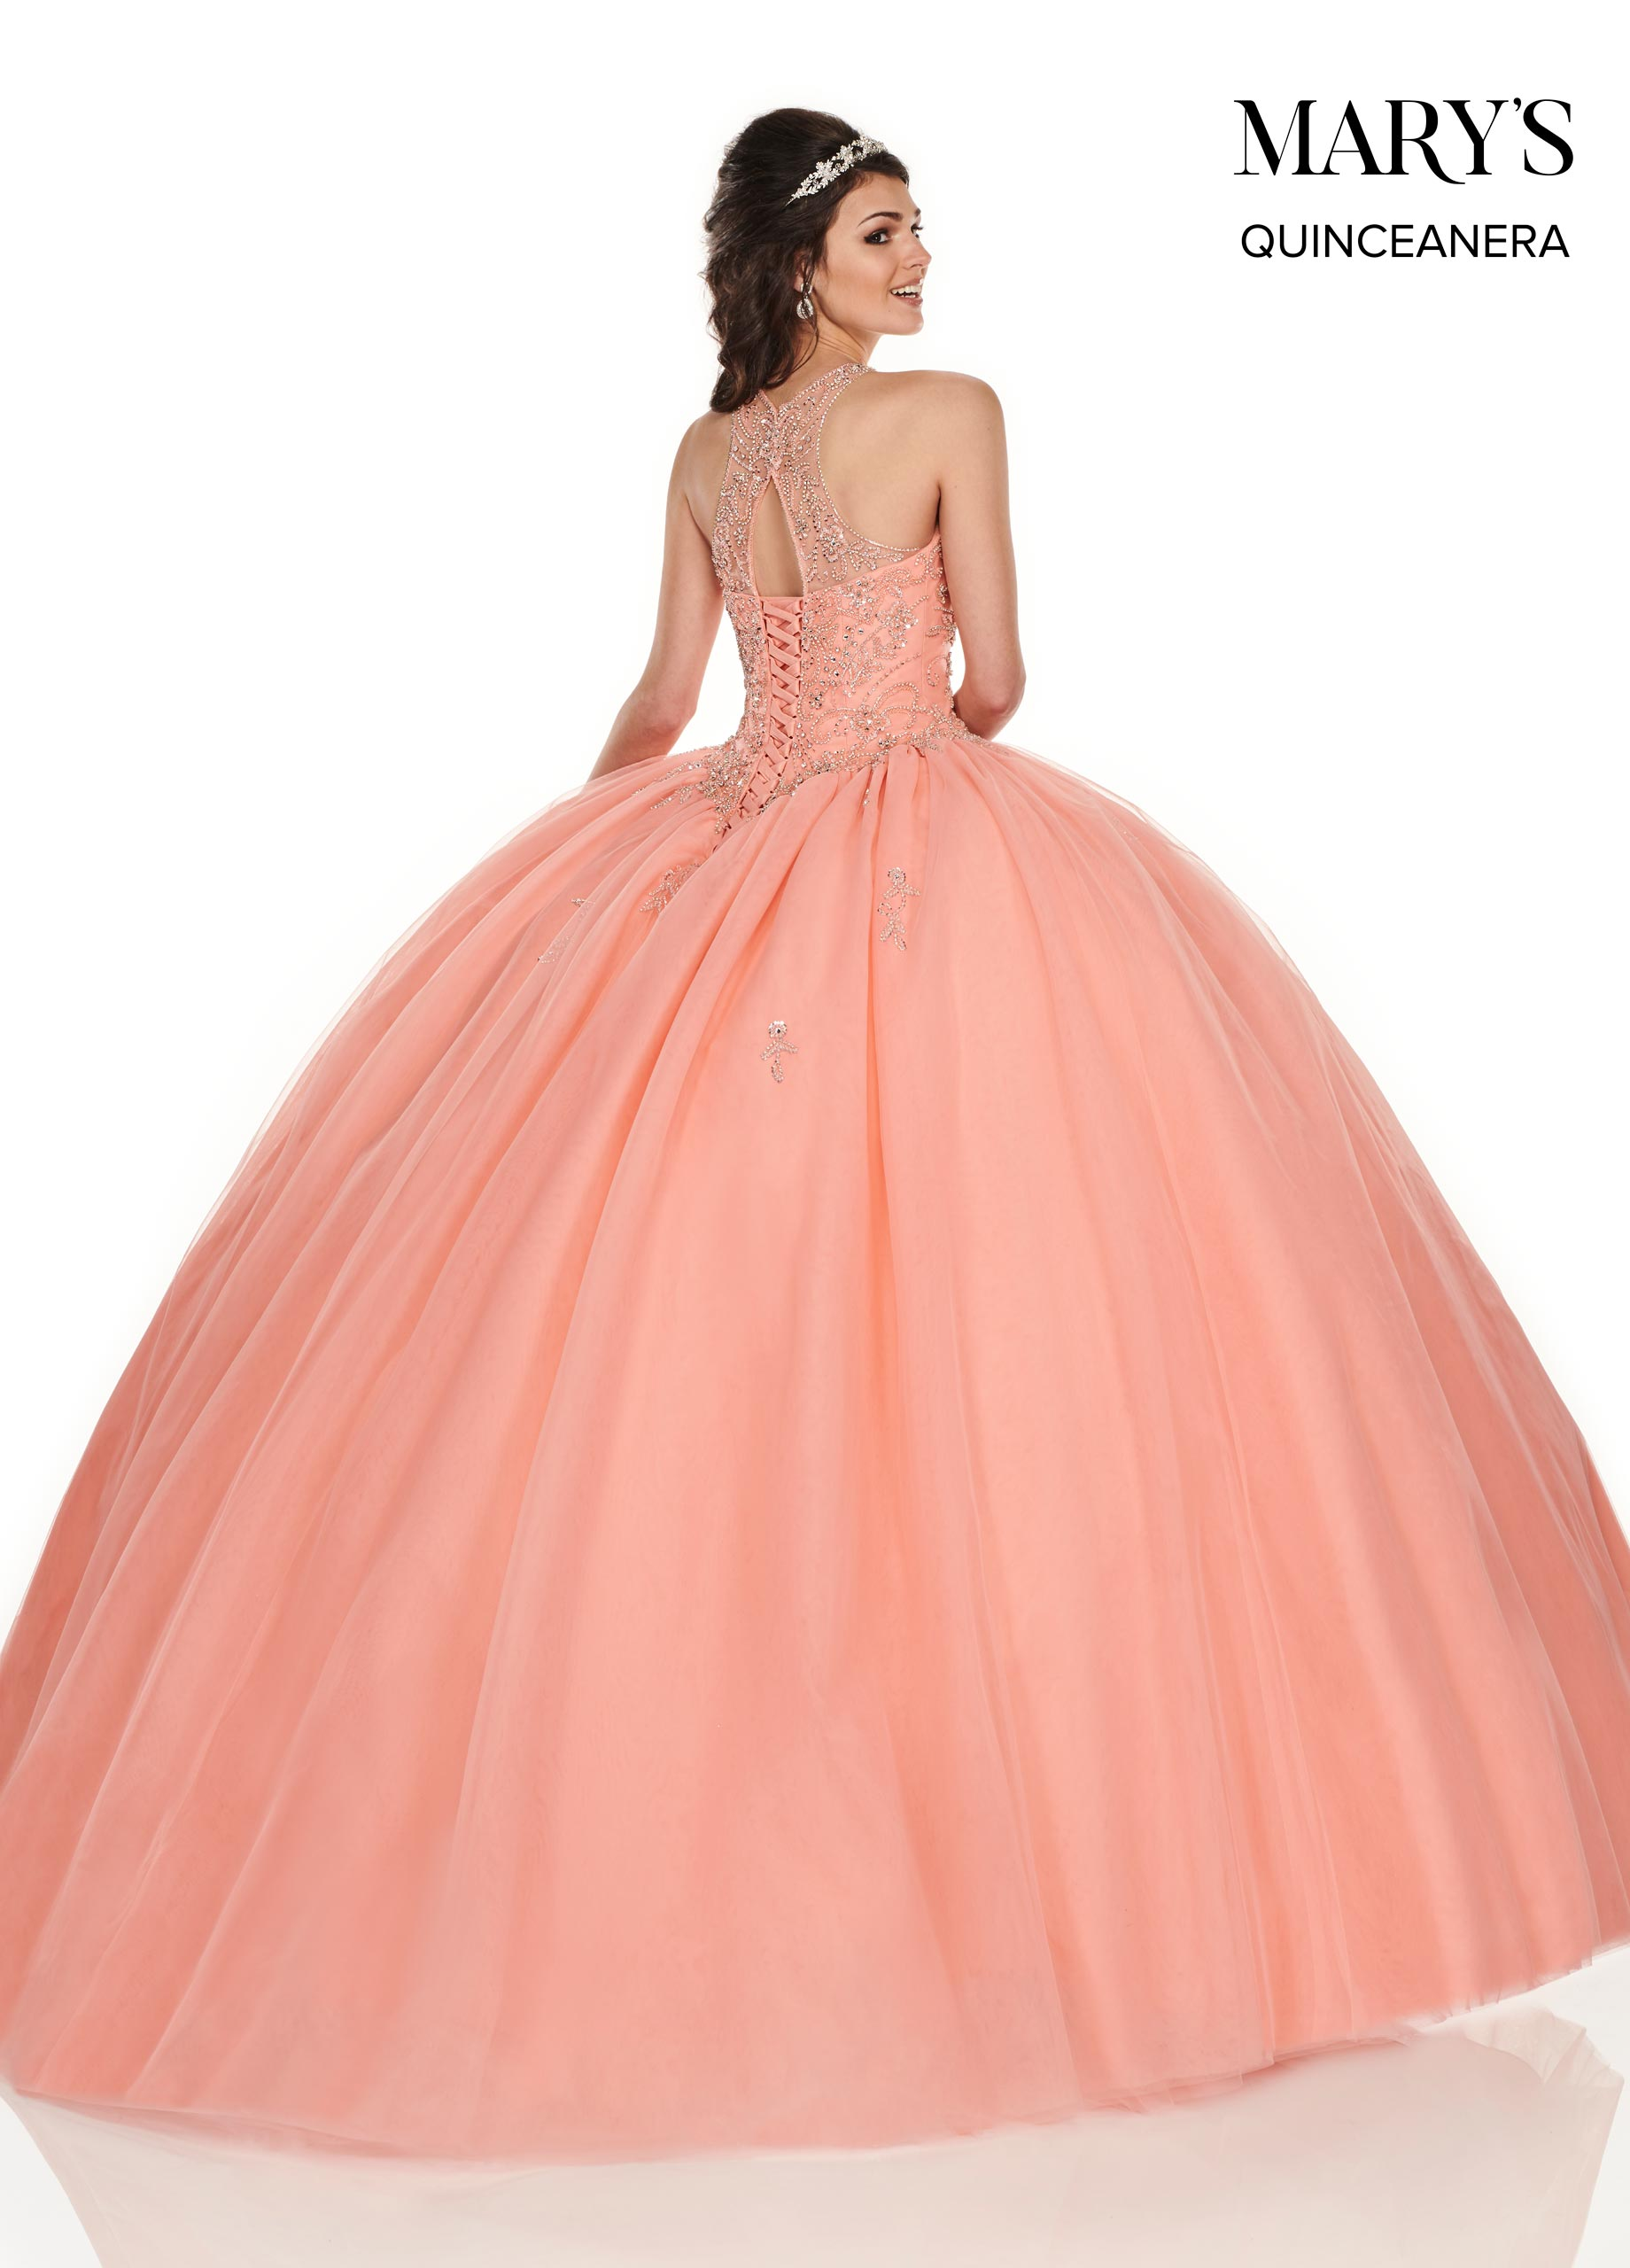 Marys Quinceanera Dresses | Mary's Quinceanera | Style - MQ1051